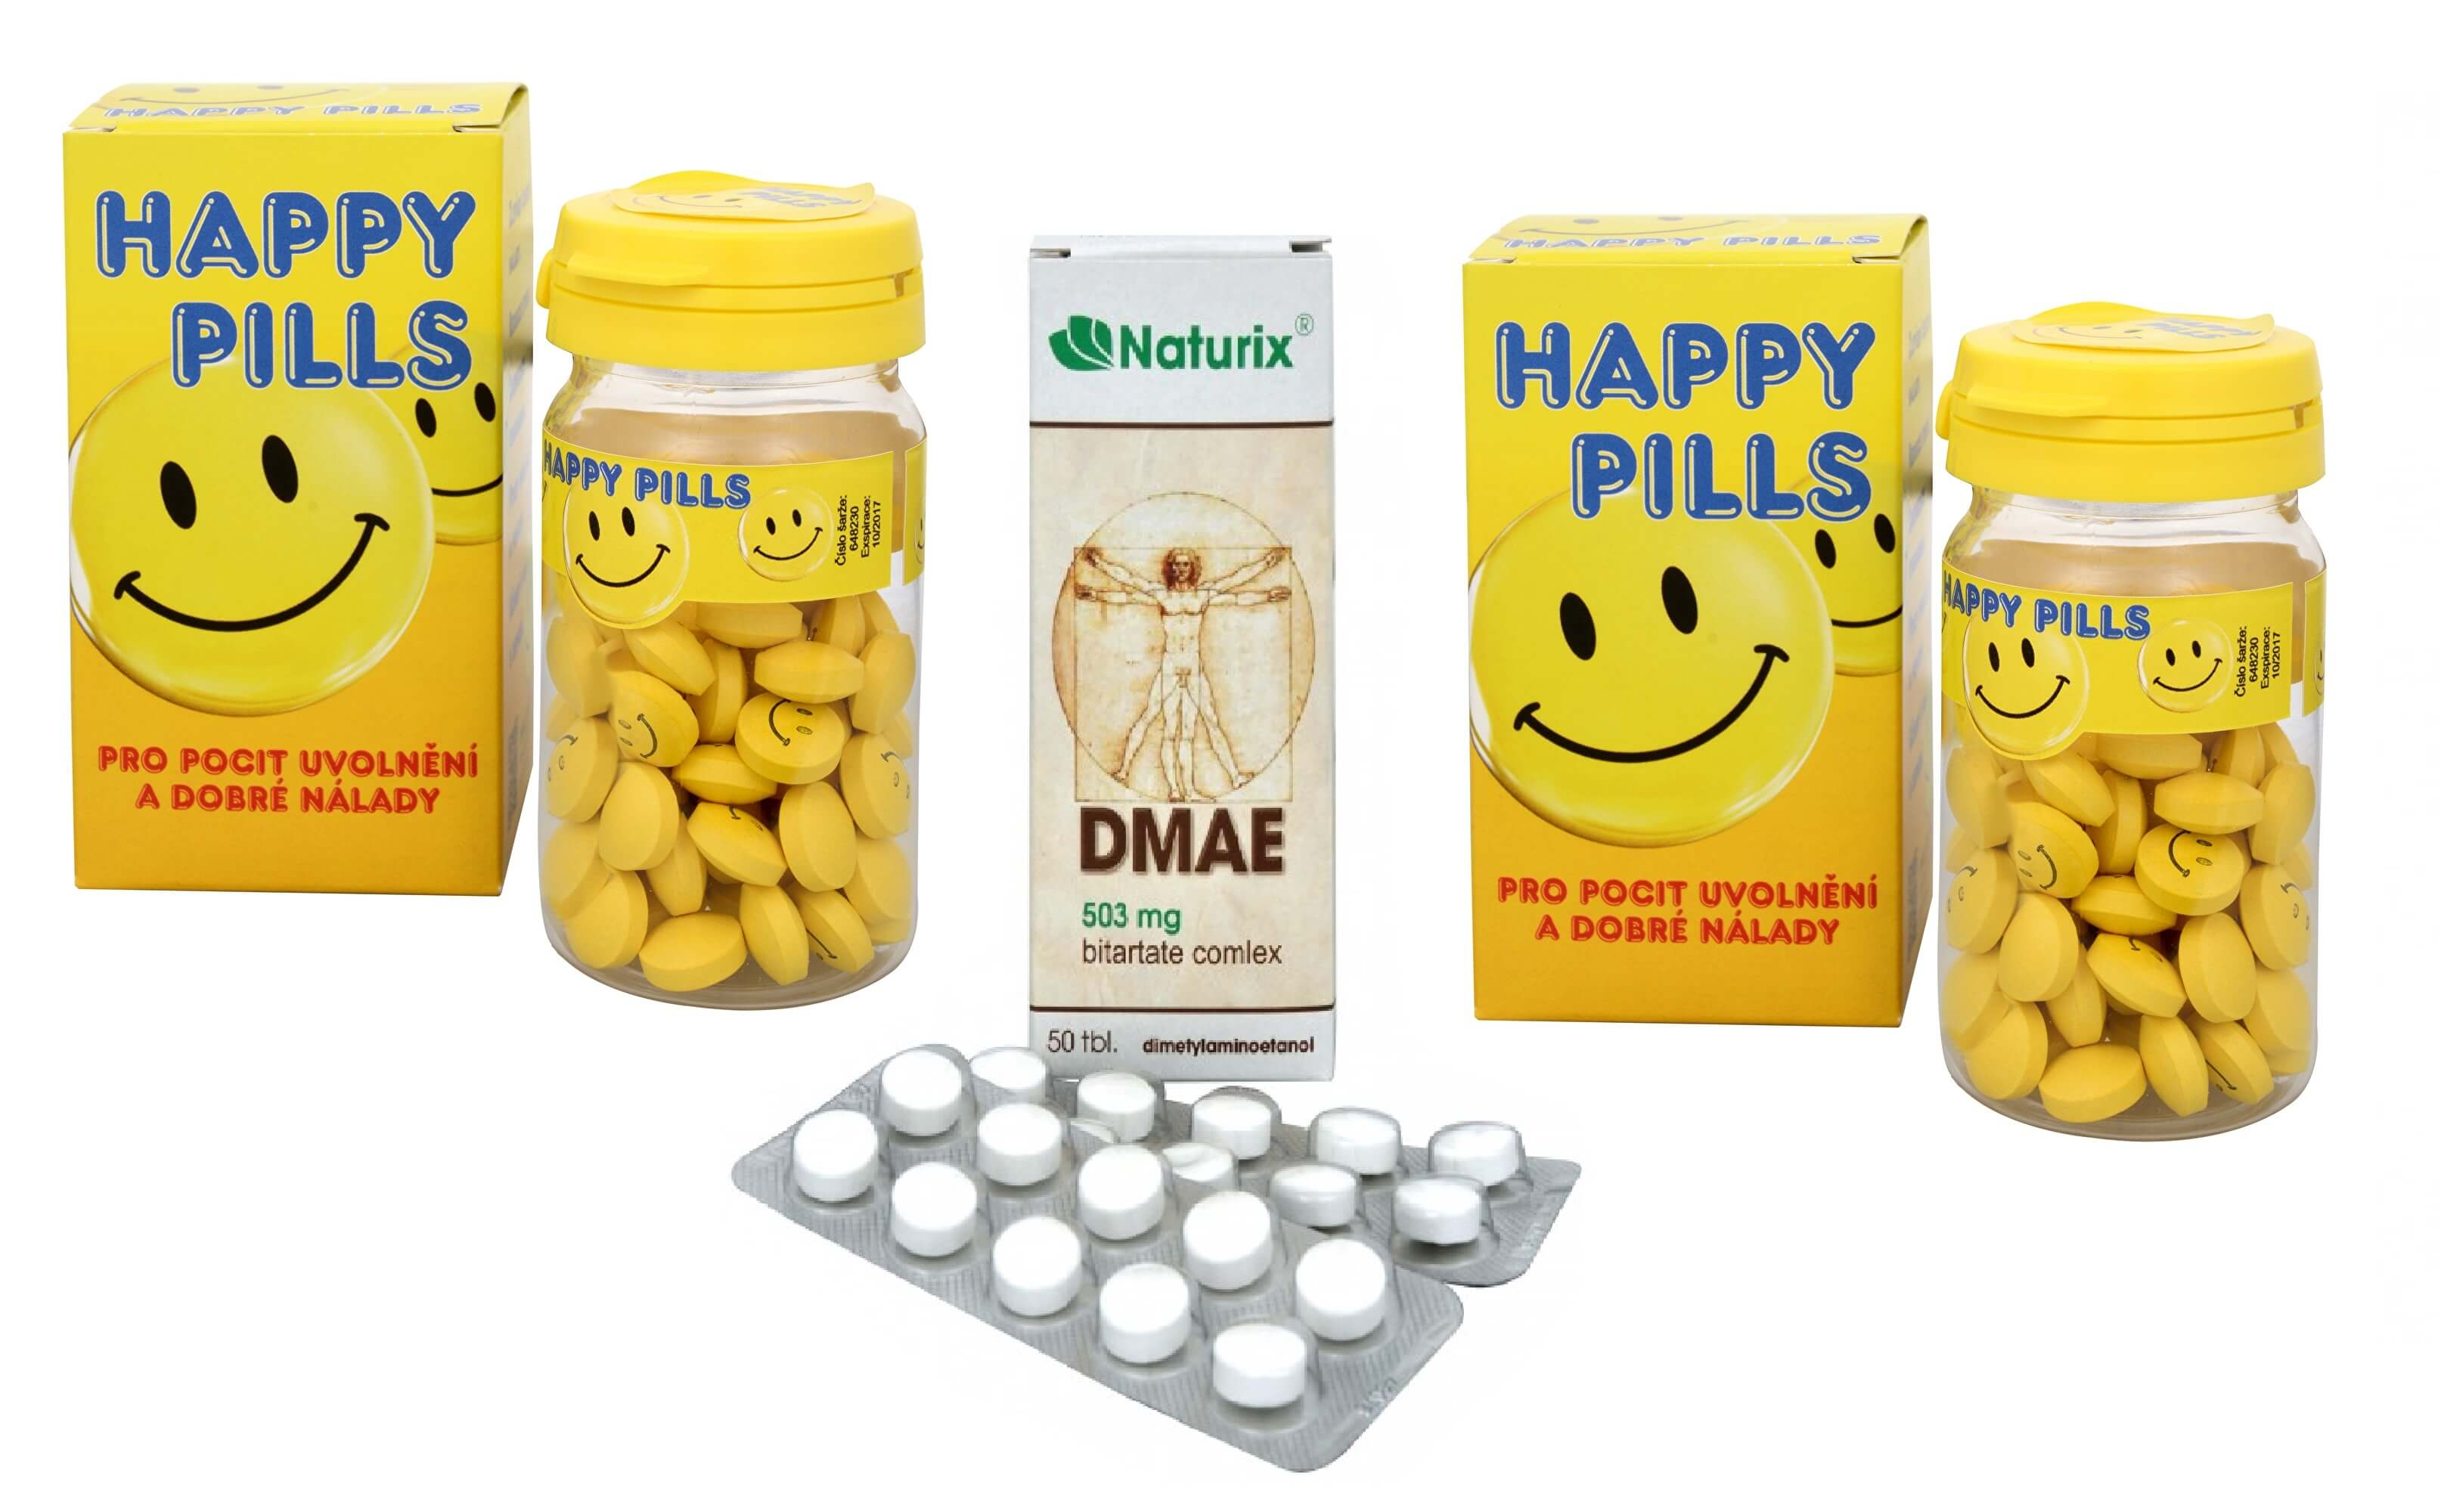 Vetrisol Happy Pills 2 x 75 tbl. DMAE 50 tbl.